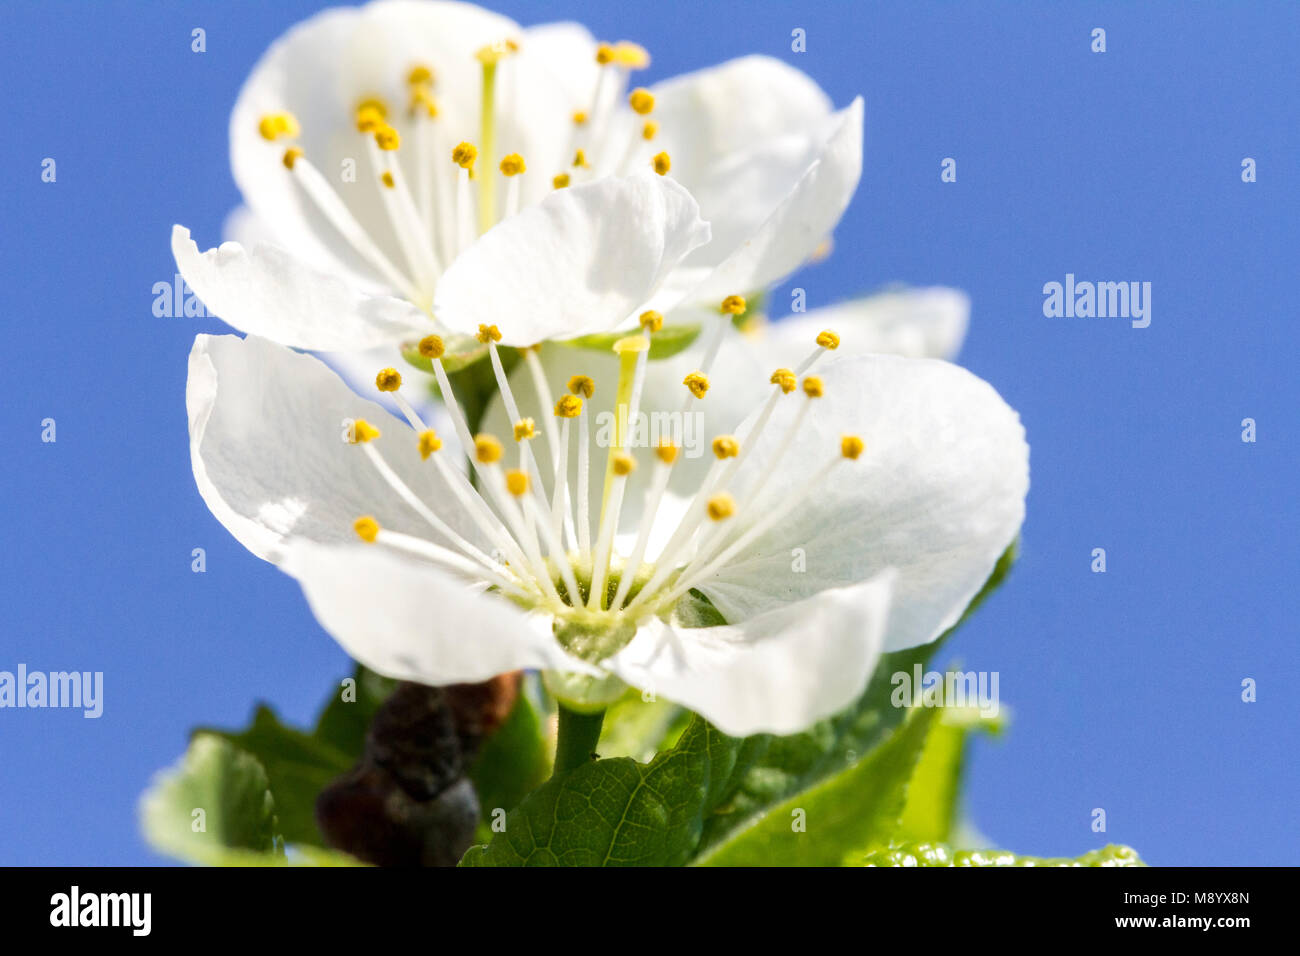 Airy soft white flower of apple tree on blue sky background. Romantic gentle artistic image. - Stock Image